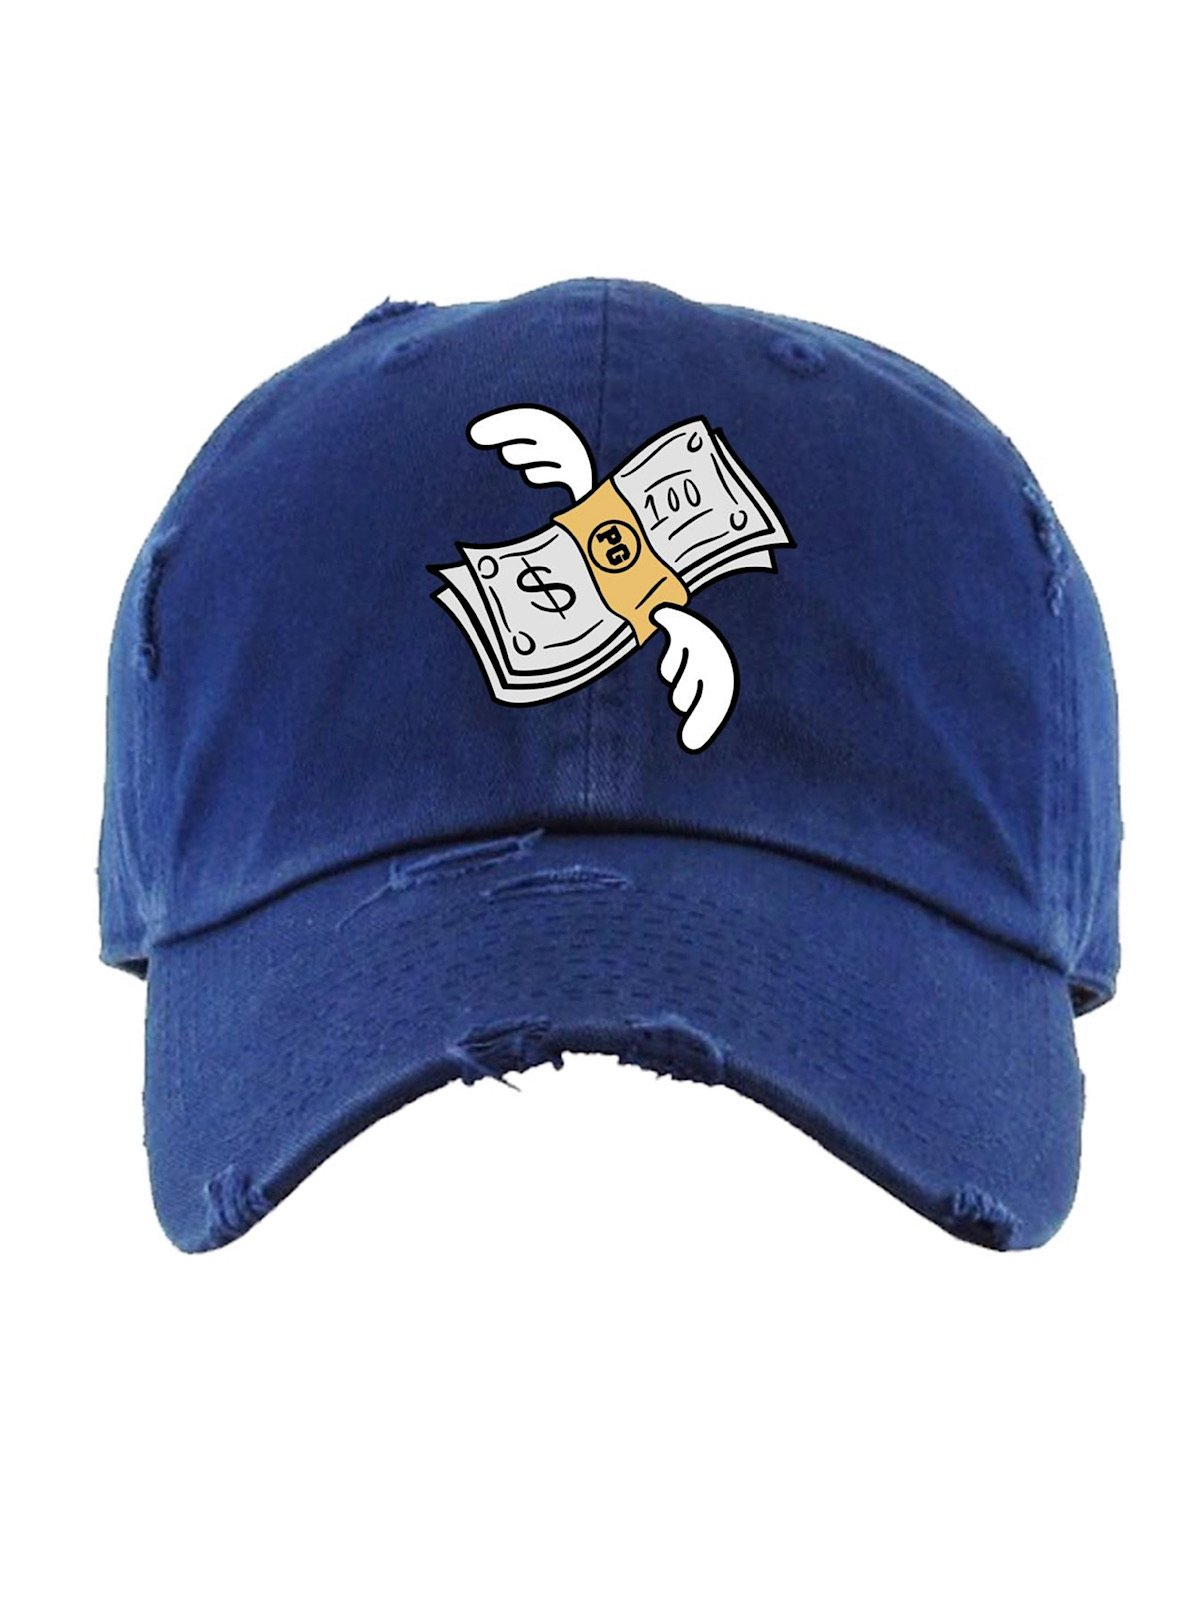 PG Apparel Hat - Flying Money - Navy